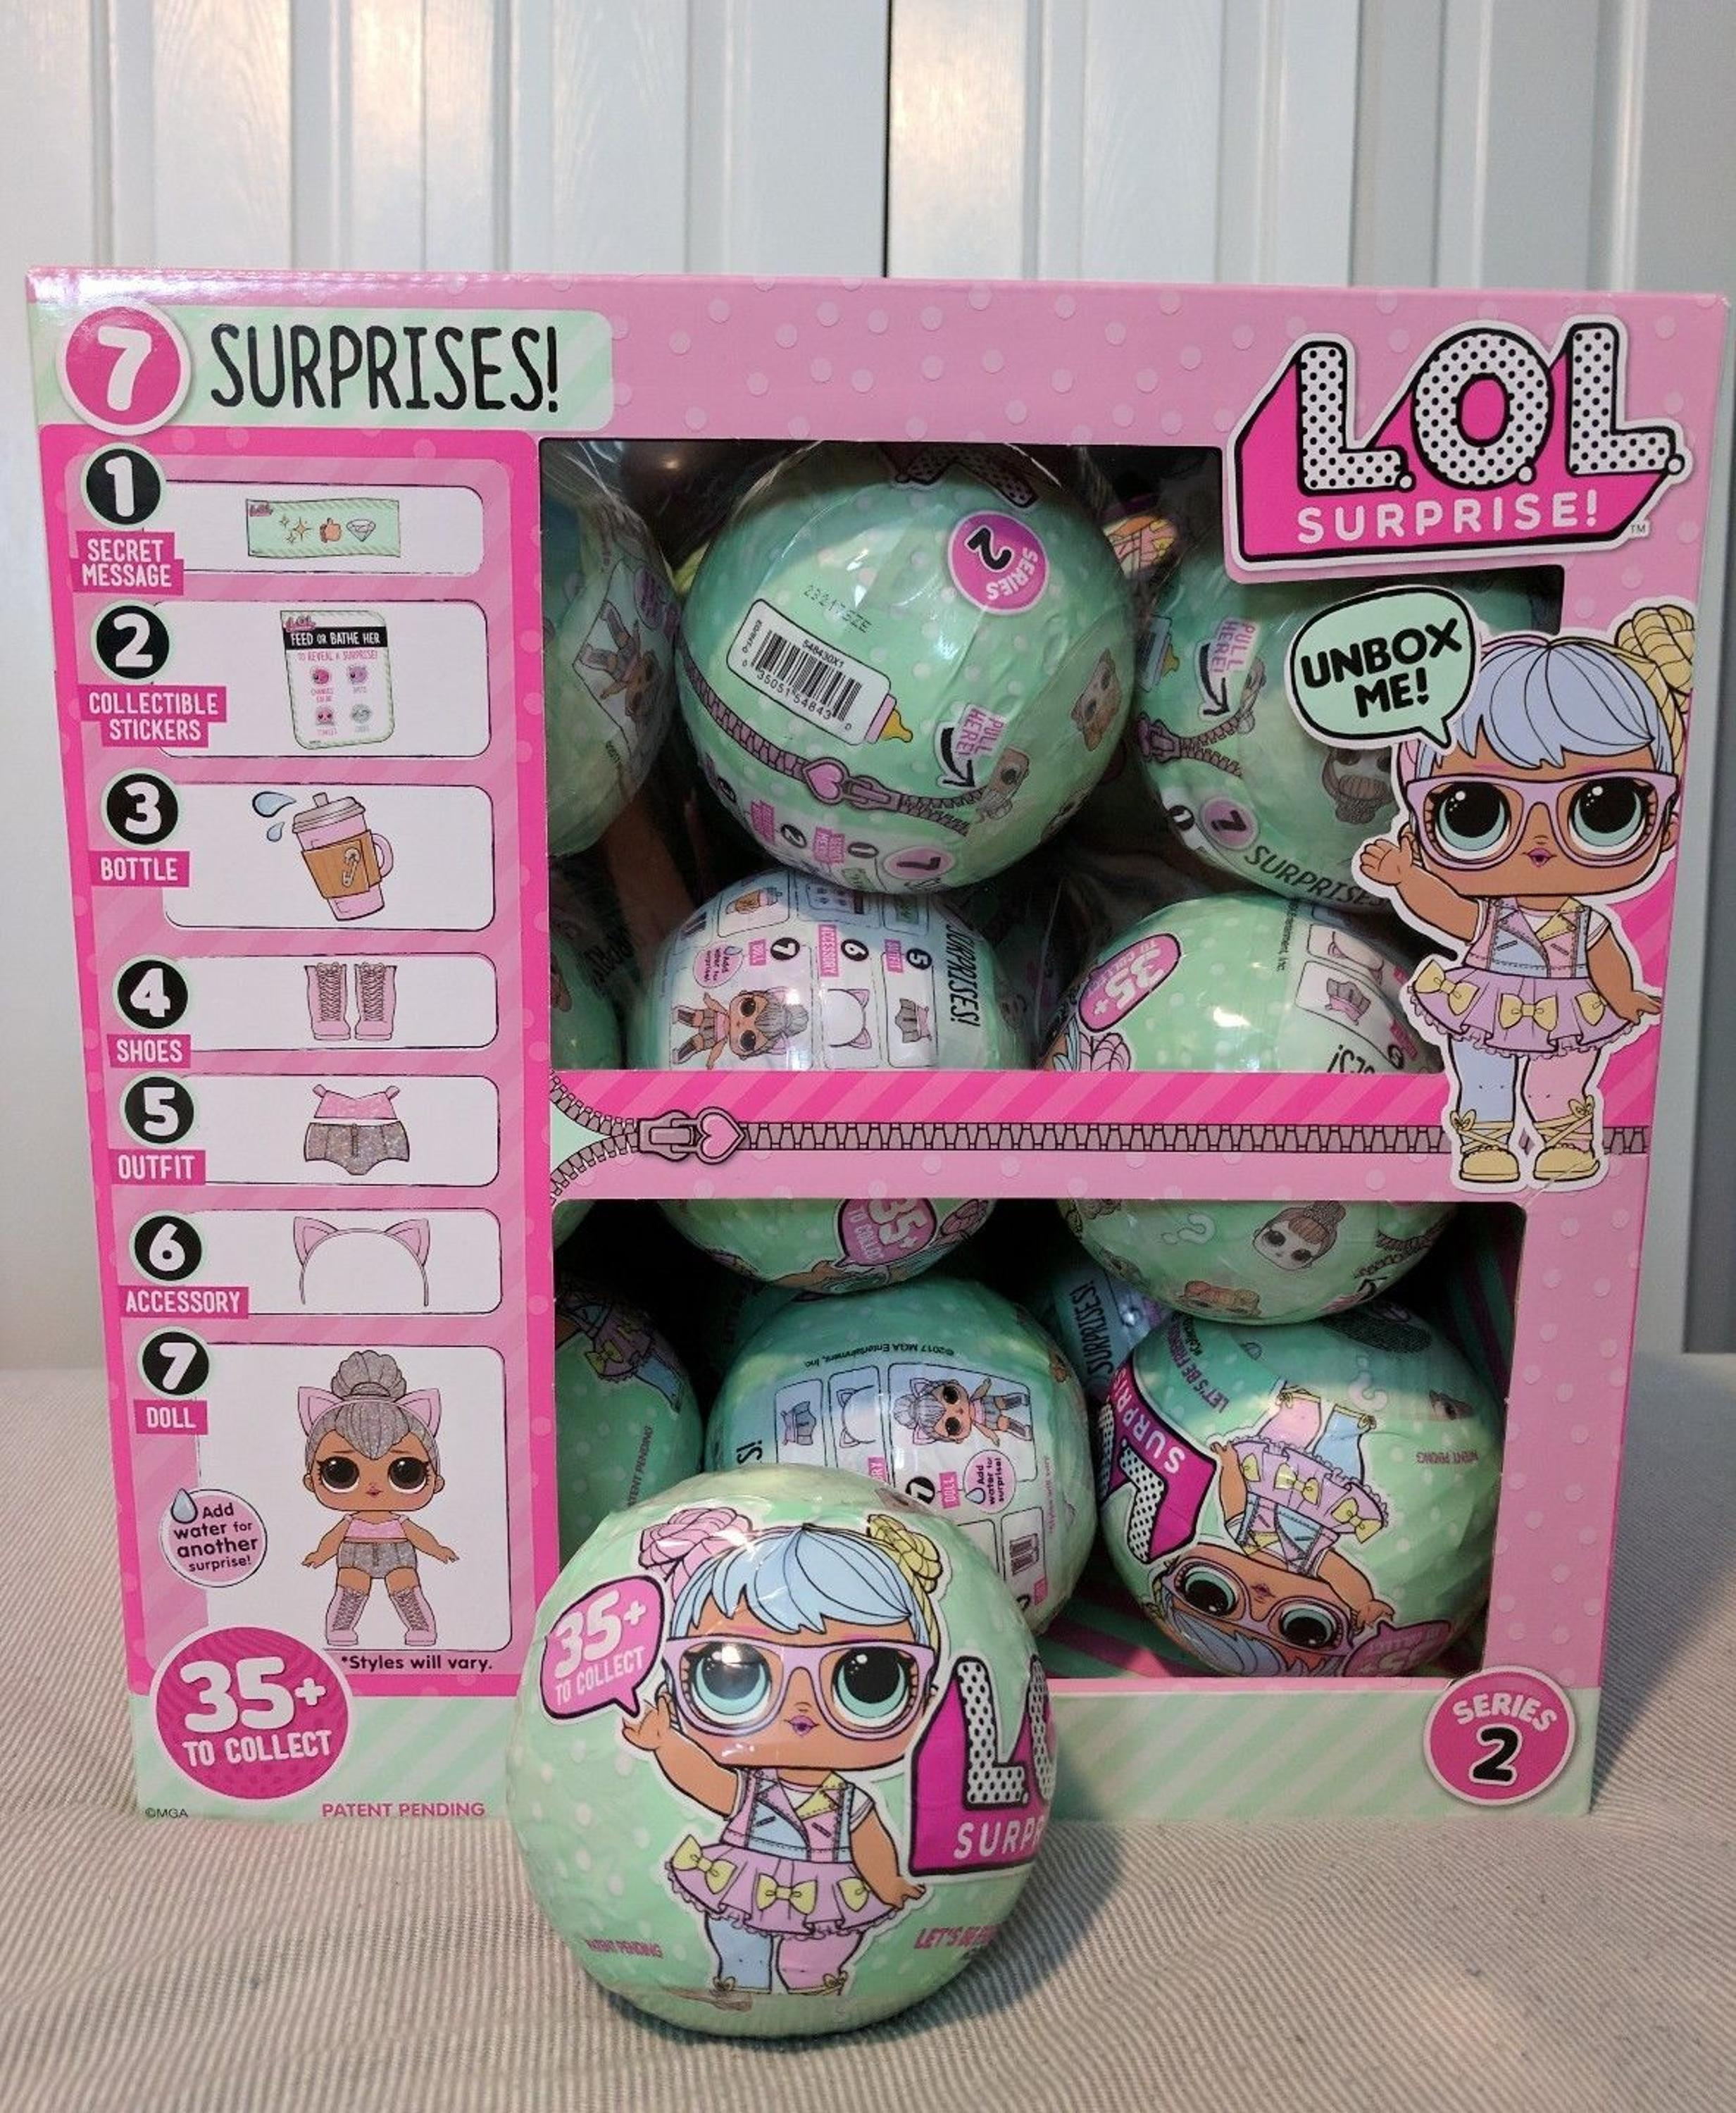 LOL Surprise Doll Series 2 Lets Be Friends - ONE BALL, Big Sister